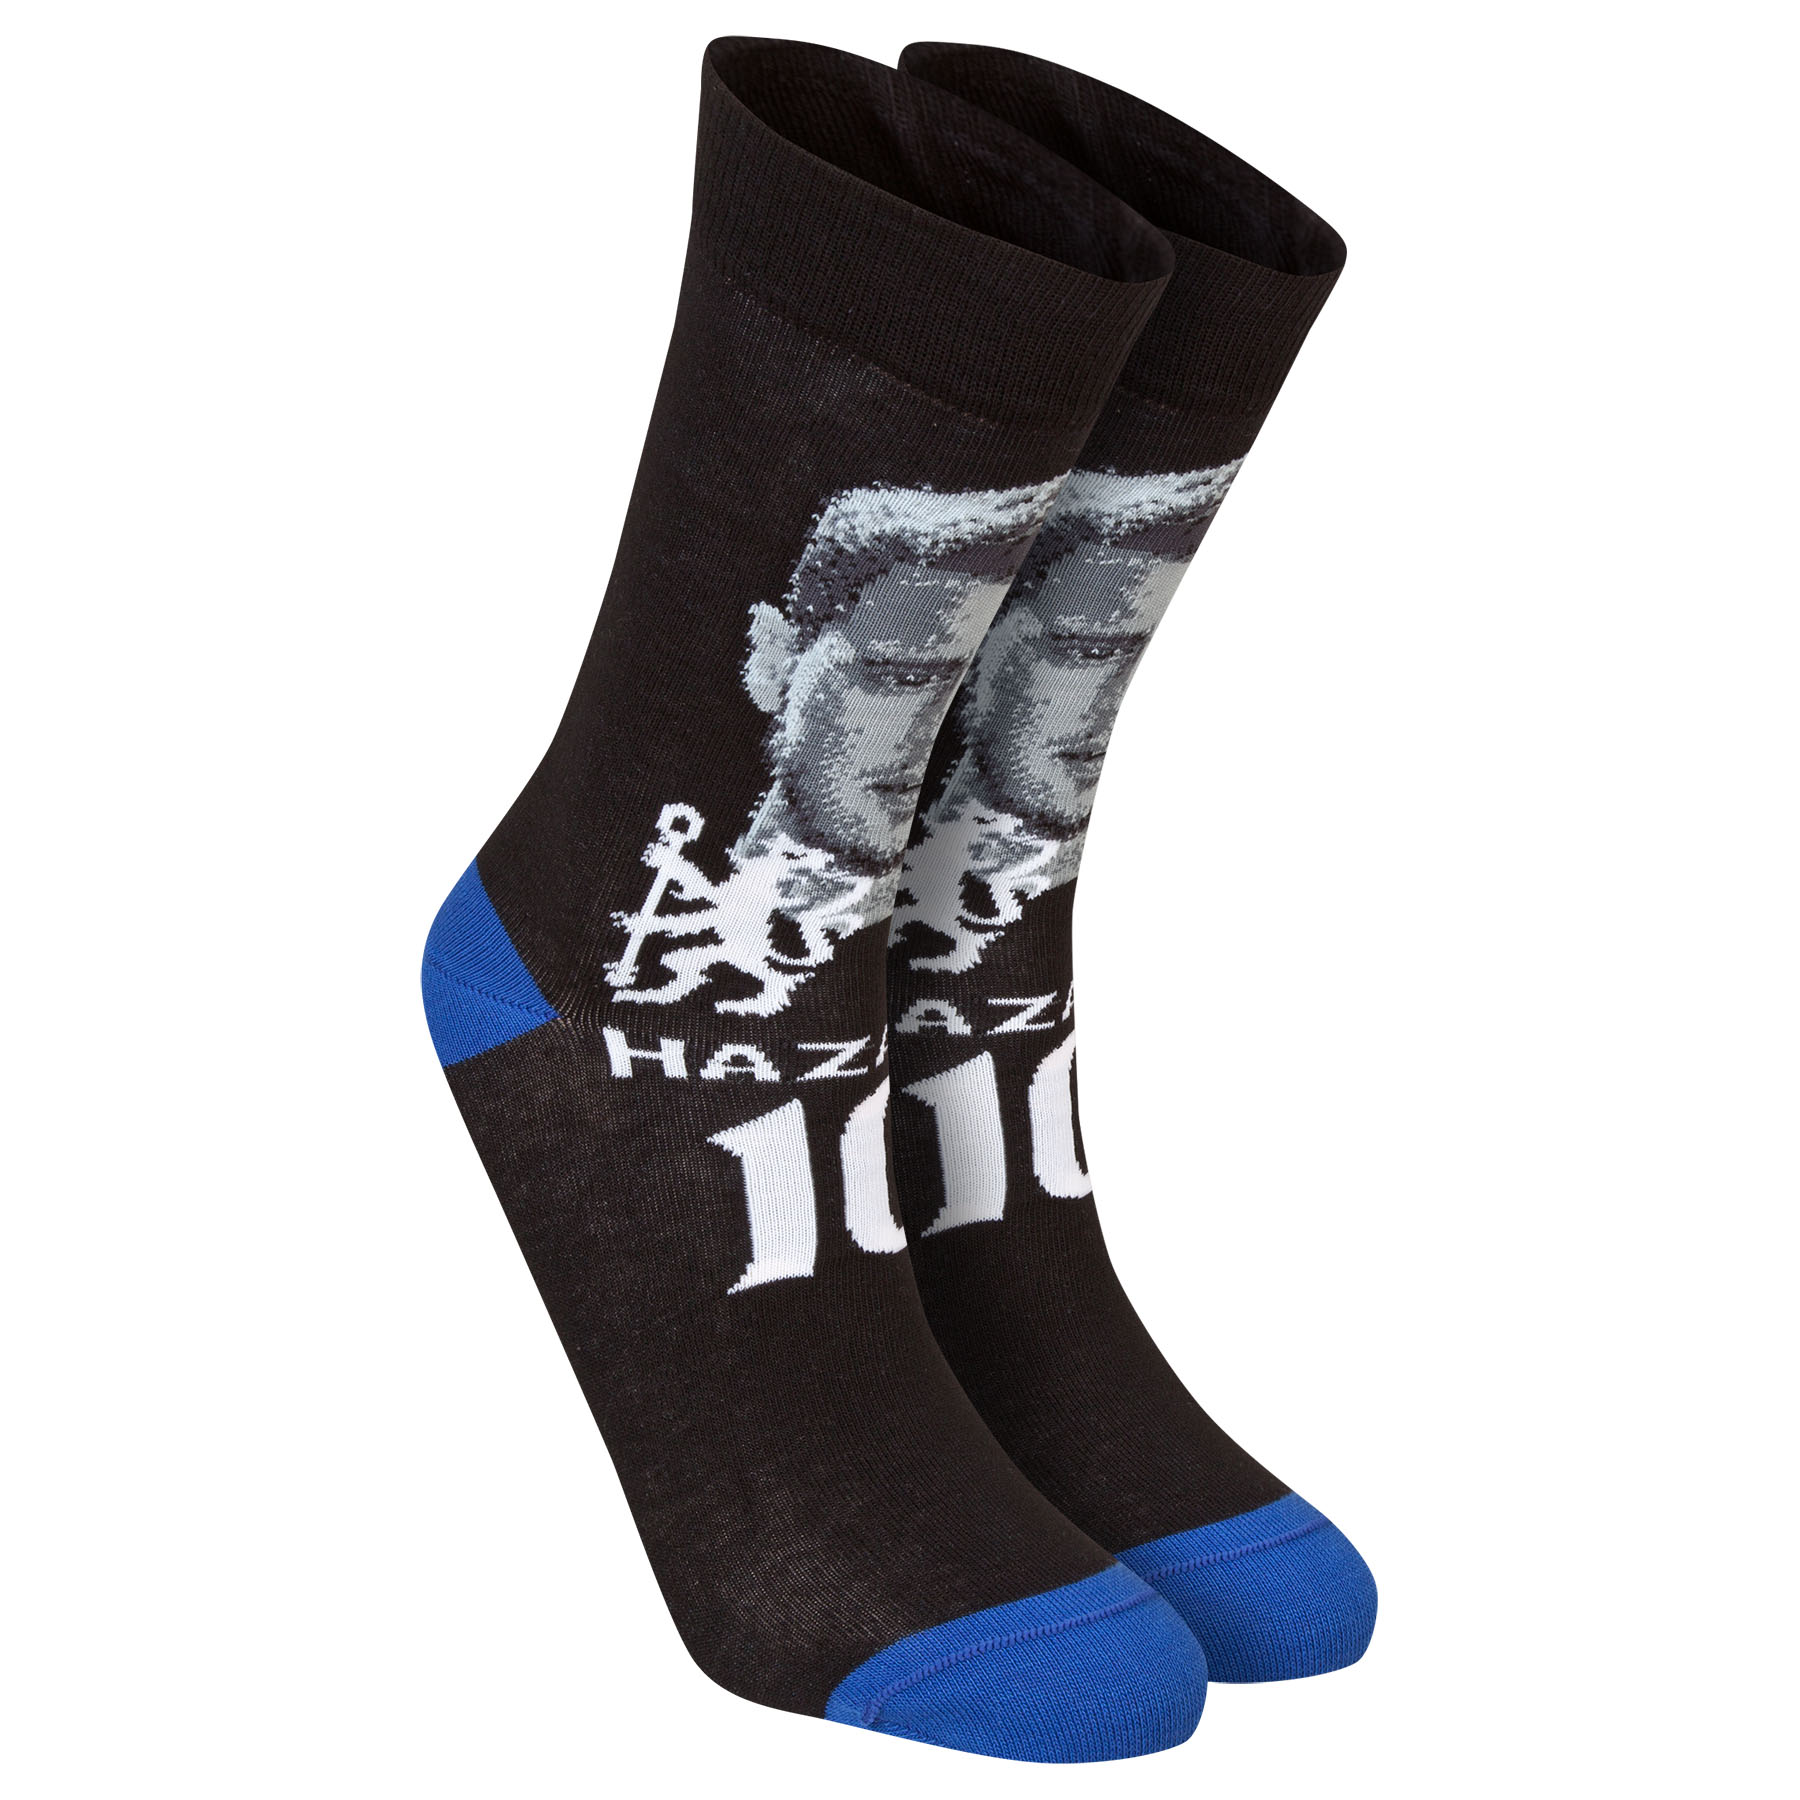 Chelsea Hazard Player Socks - Black - Boys